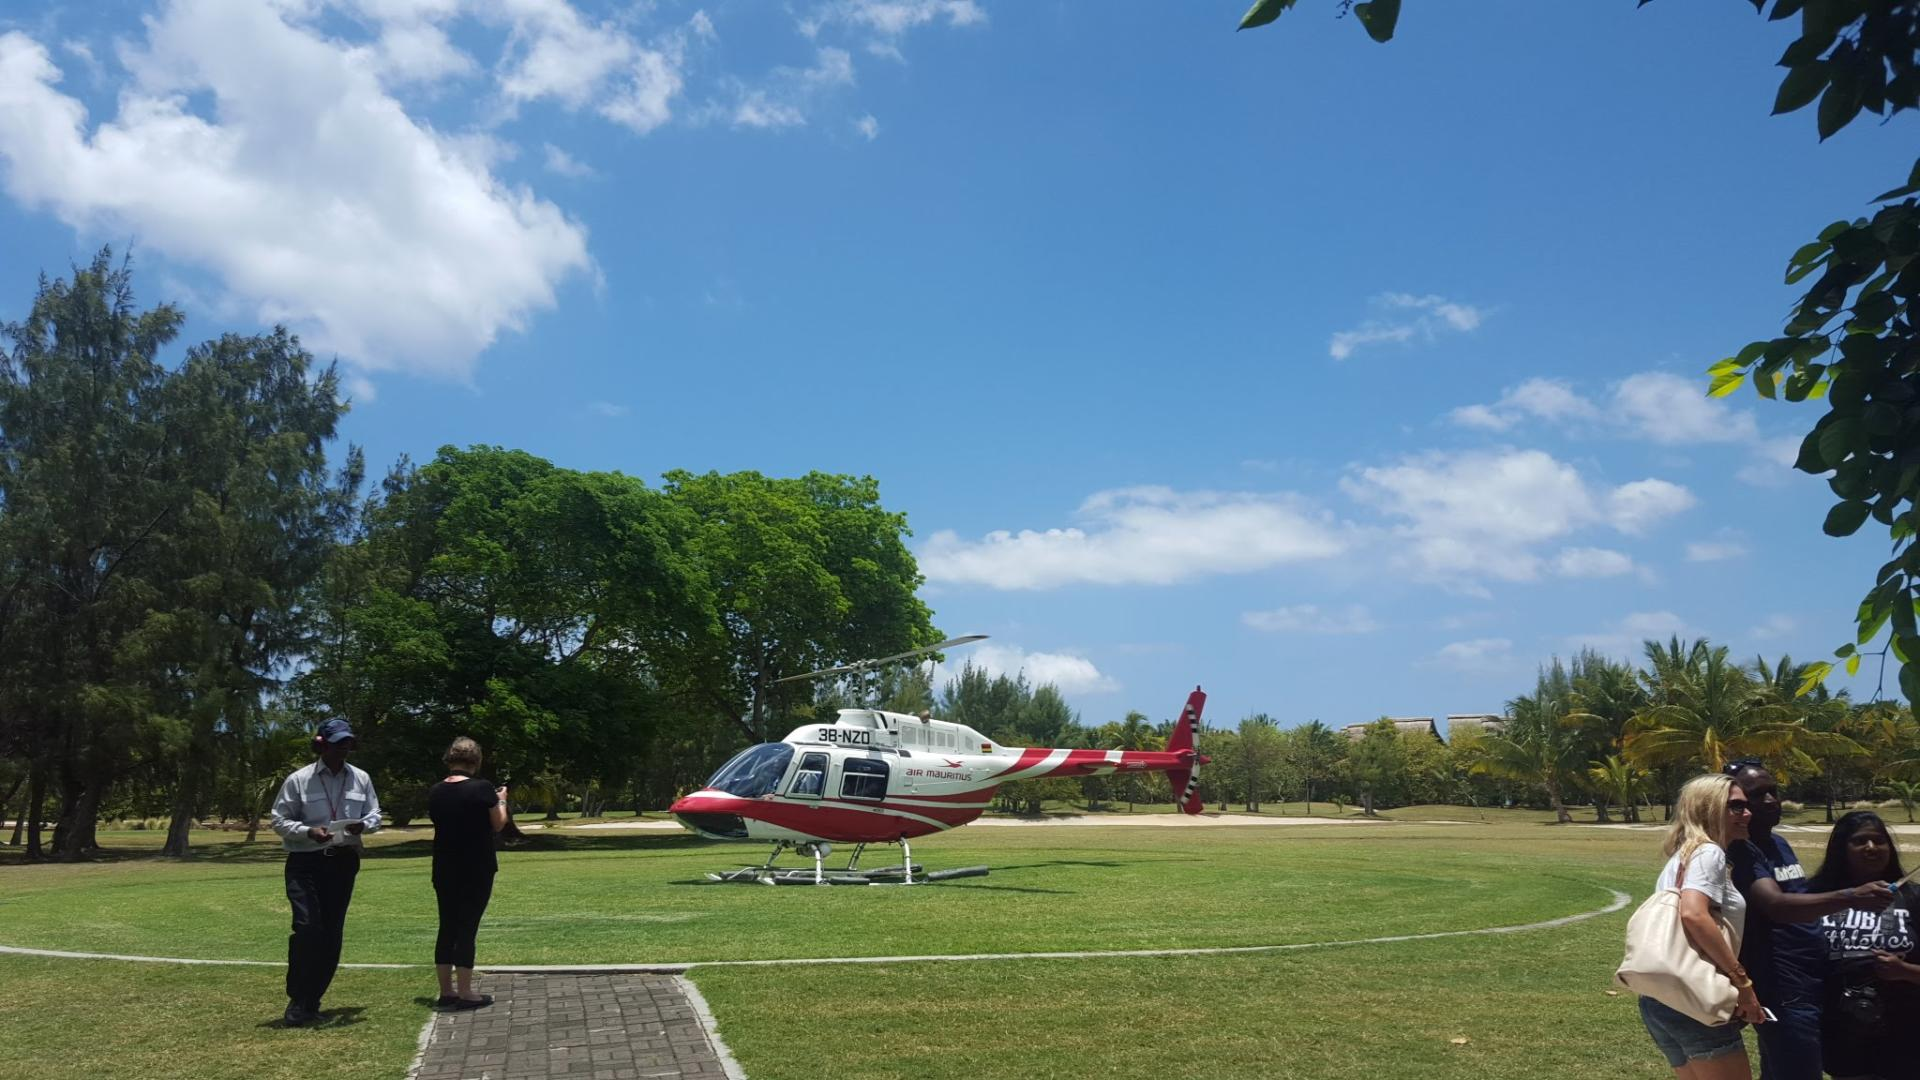 Inter-hotel Transfer by Helicopter